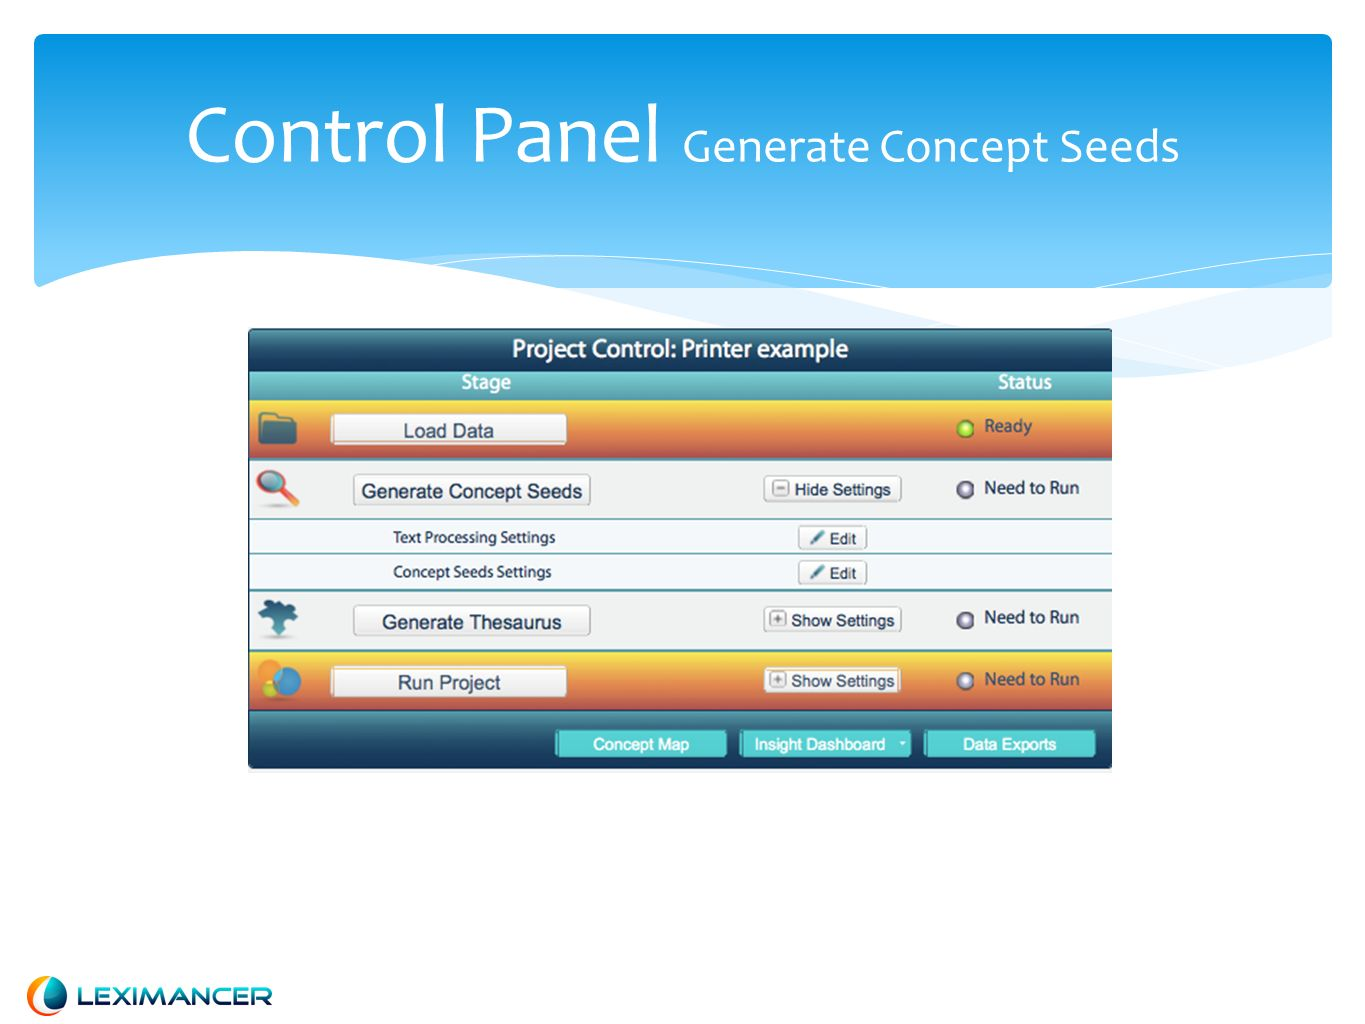 Control Panel Generate Concept Seeds